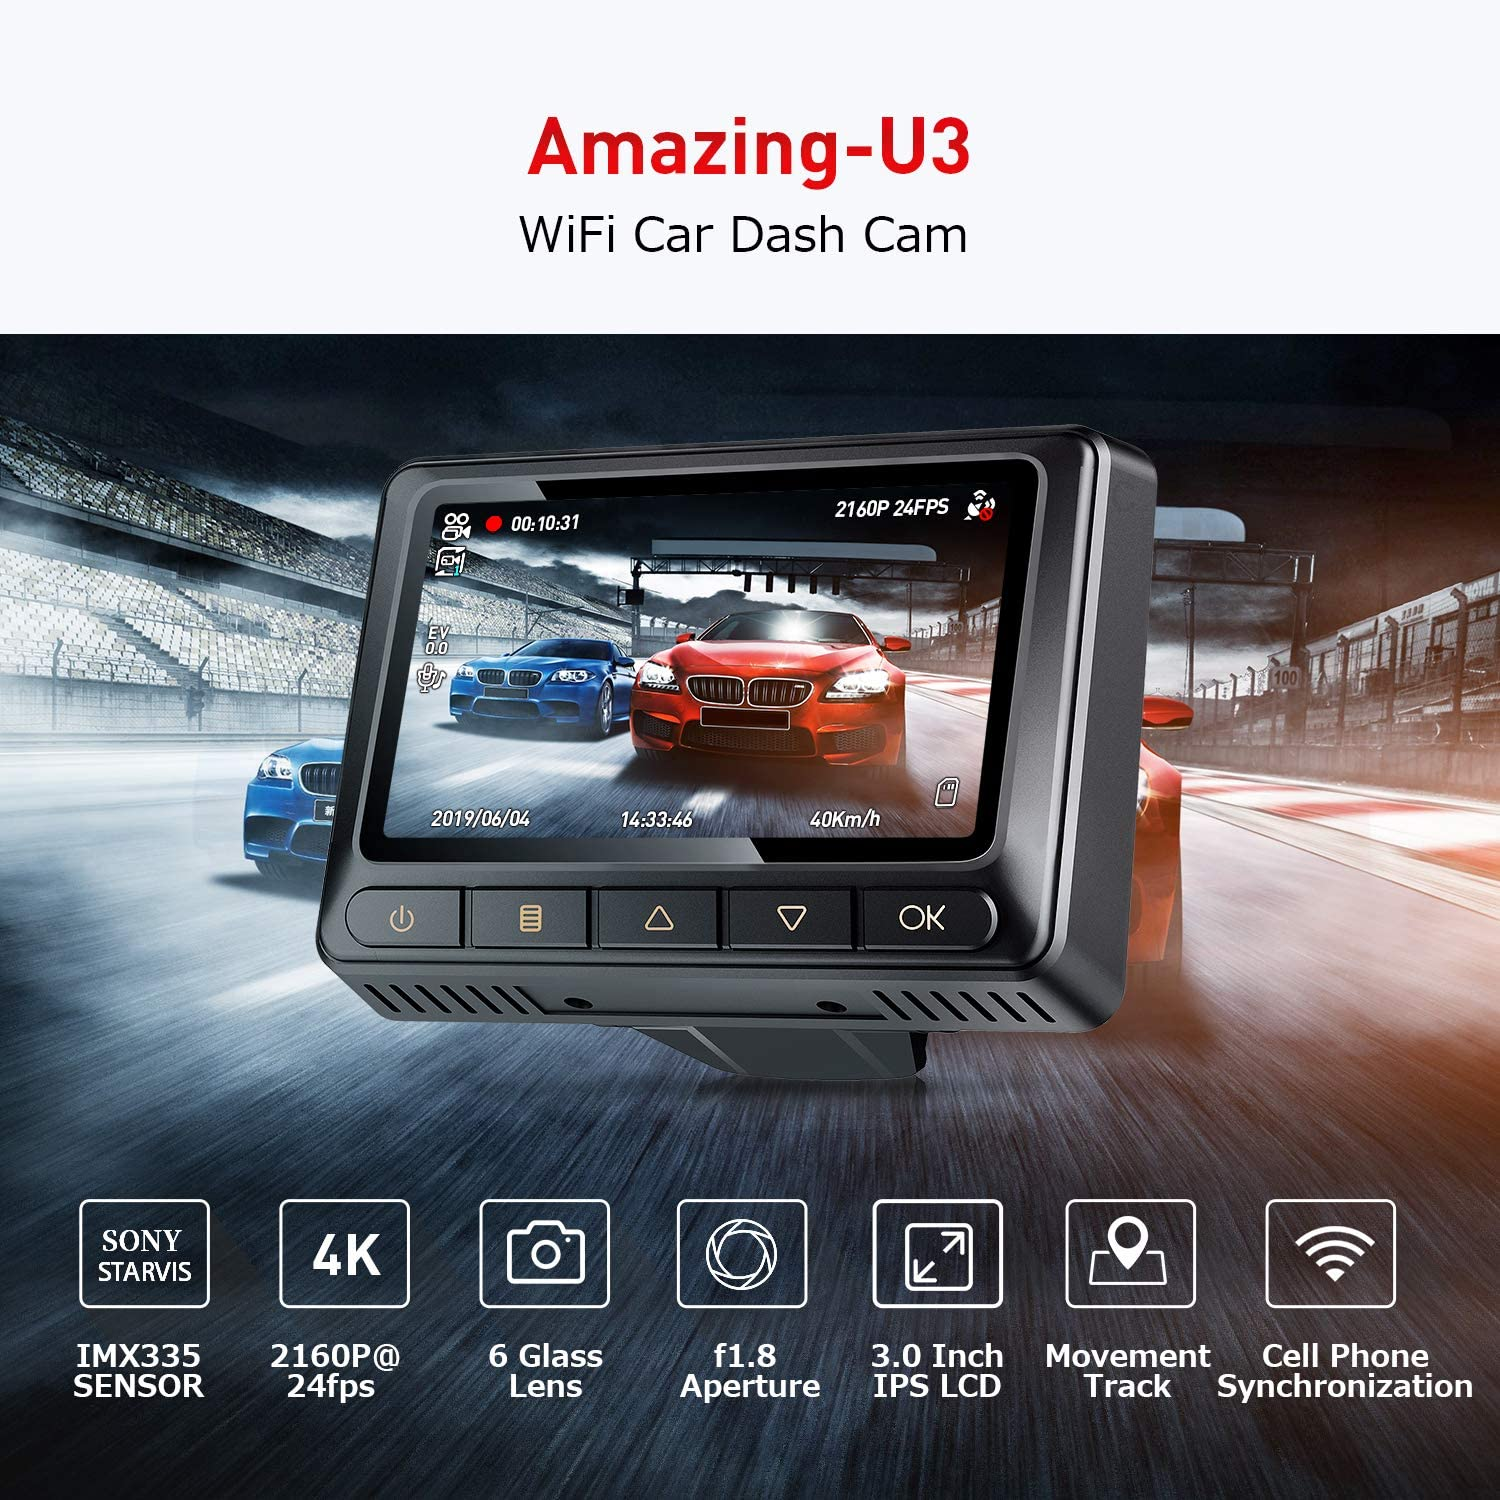 Oasser Dash Camera Car Dashcam FHD 2880-2160P 3.0inch LCD Dashboard Camera Recorder with GPS WiFi Parking Mode Support for Sony IMX335 Video Sensor 128G Max G-Sensor WDR Loop Recording